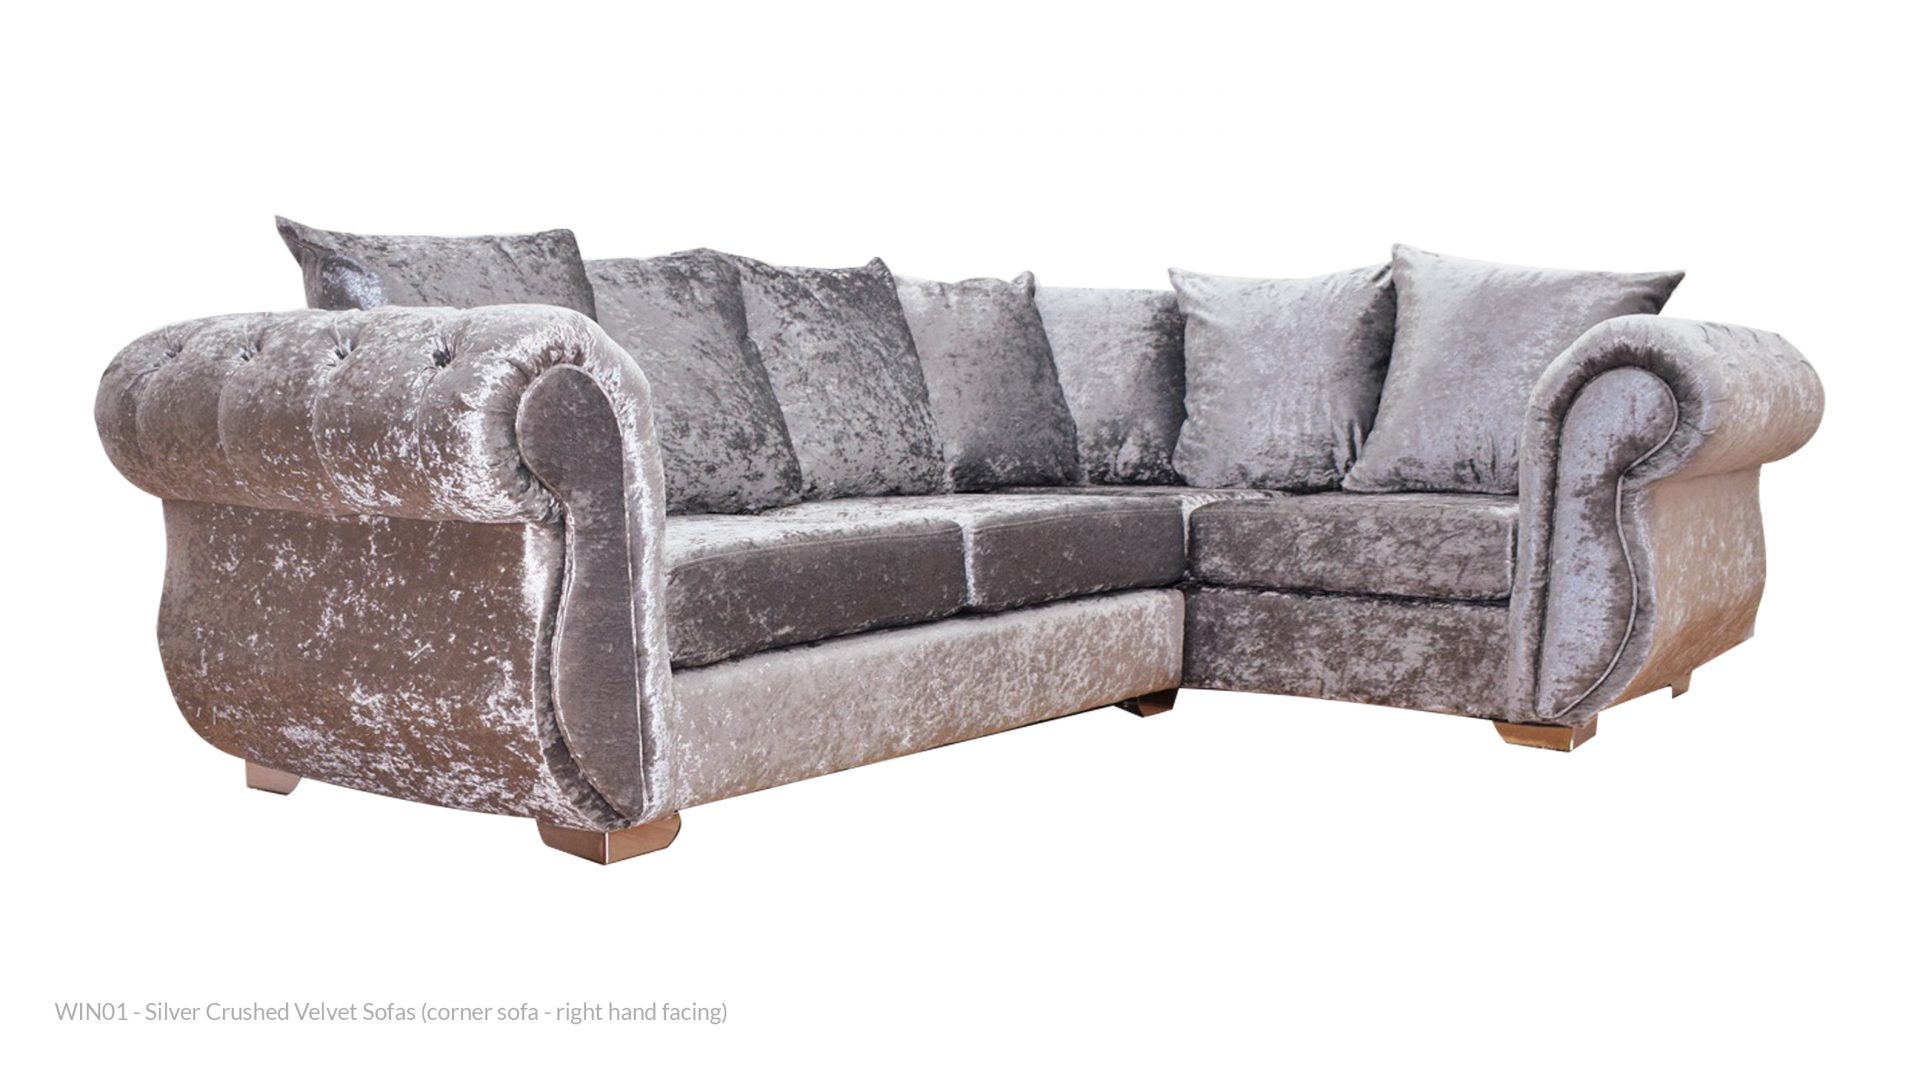 Velvet Sofa Wear And Tear Crushed Velvet Sofas Pay Weekly With Rental Goods